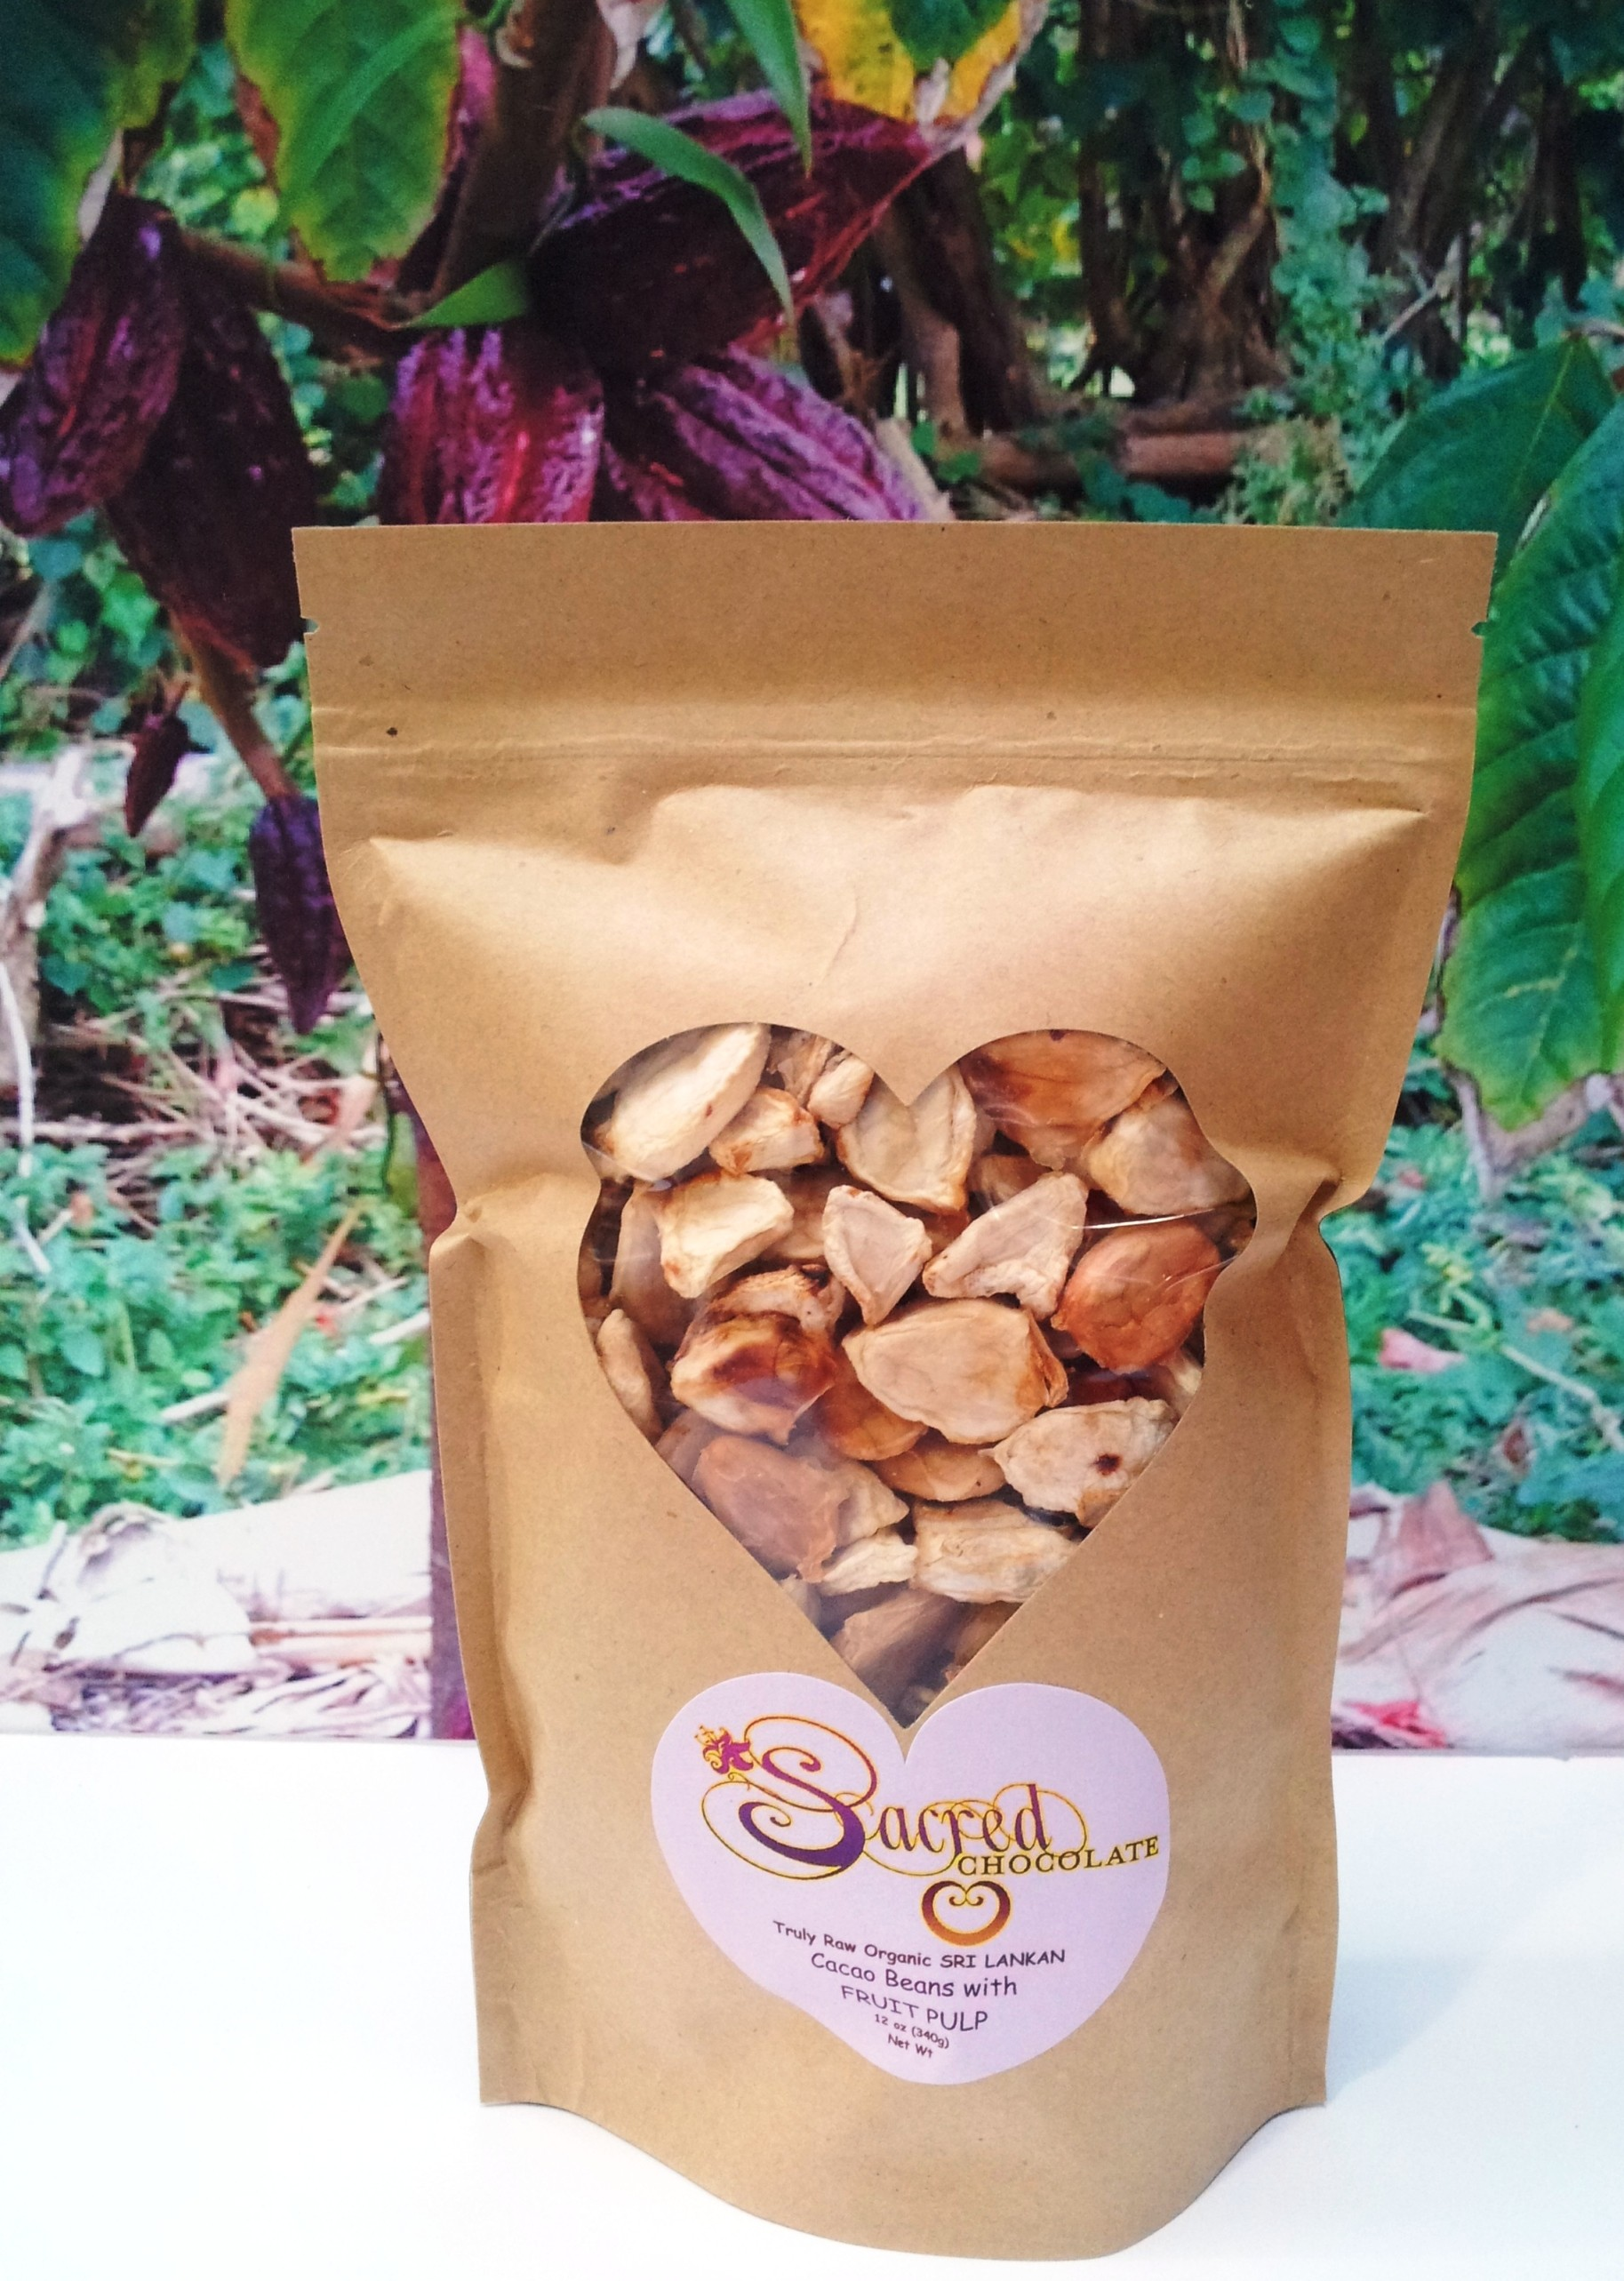 Fruit Pulp Covered Raw Cacao Beans from Sri Lanka